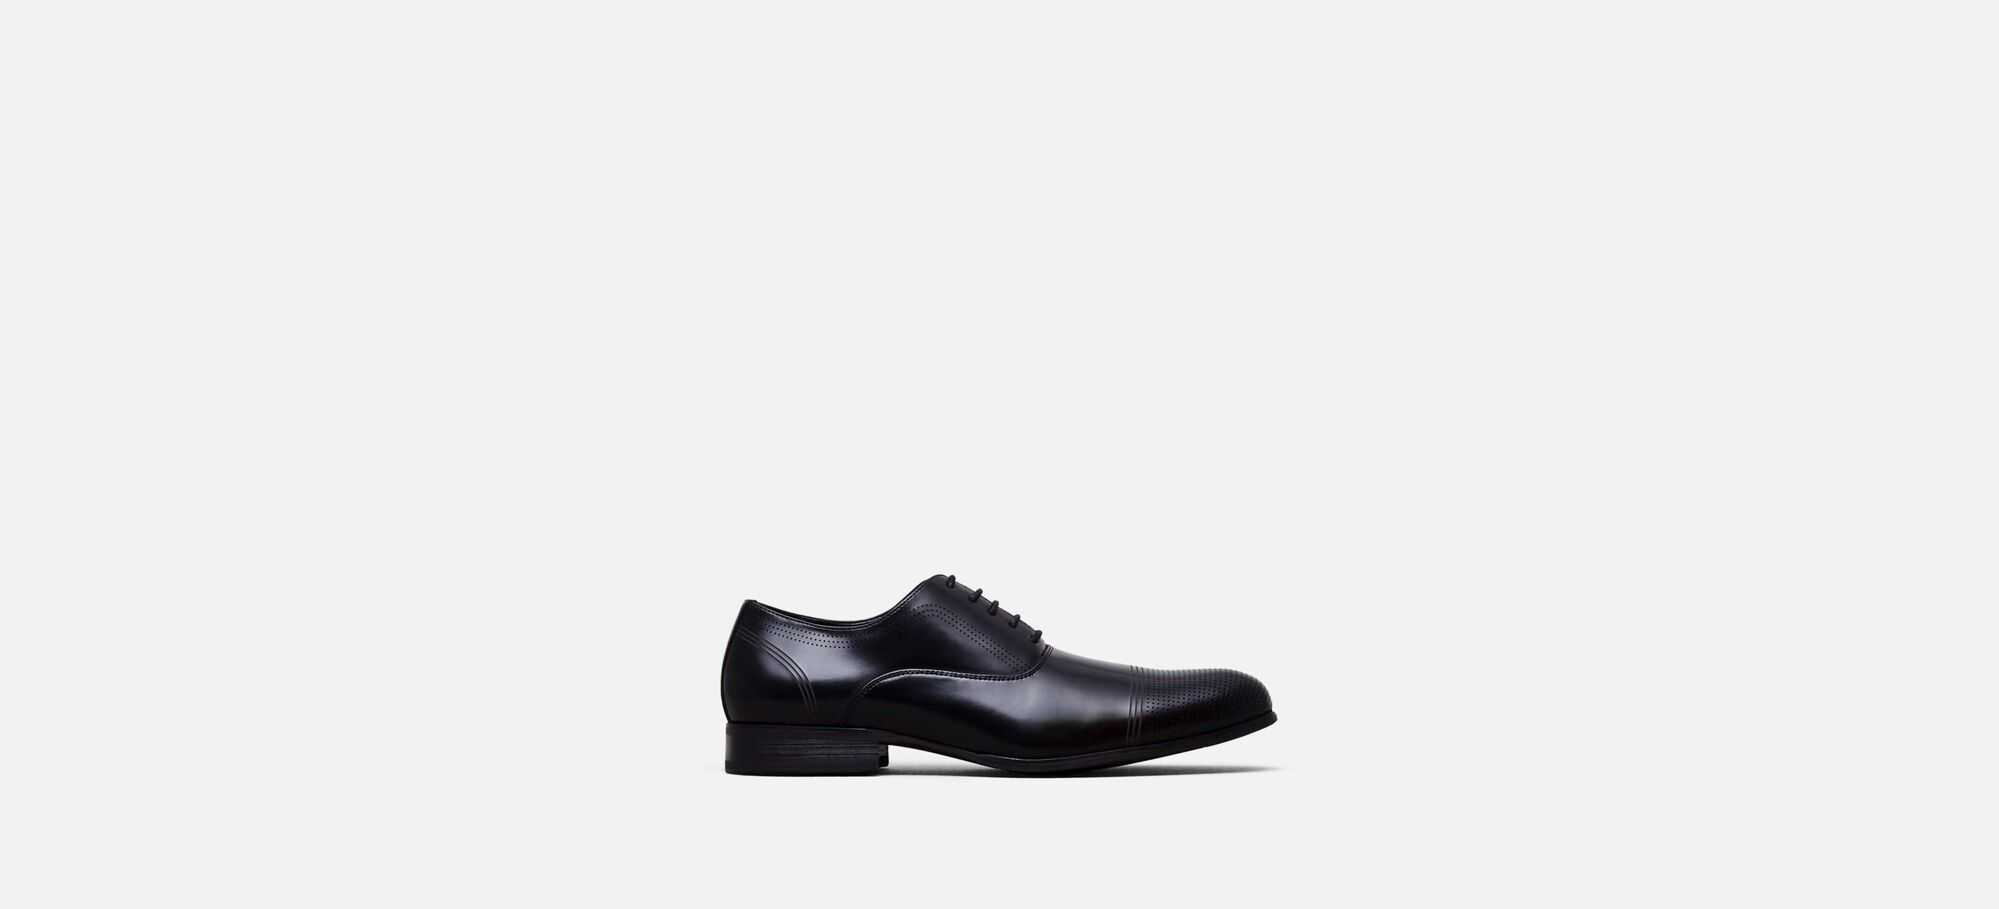 Big Wh-Eel-S Cap Toe Oxford